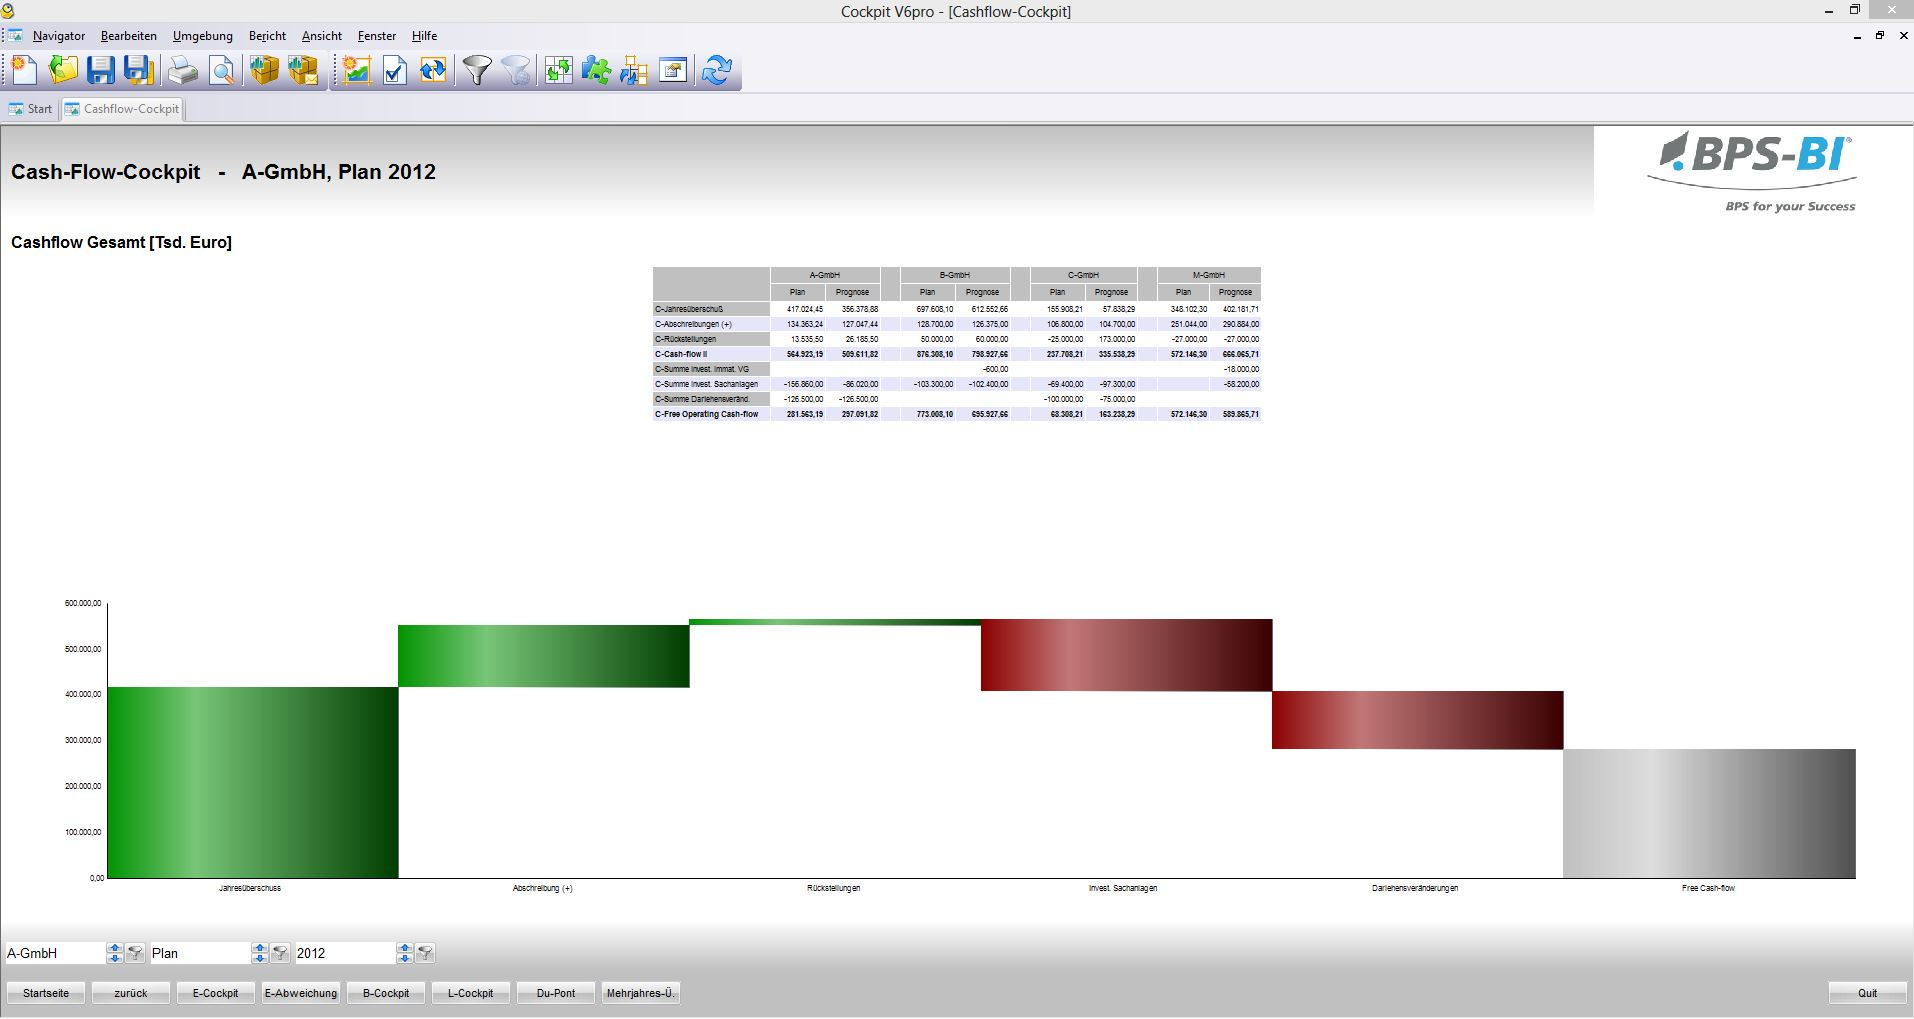 Screenshot: BPS-BI Cash-Flow-Cockput